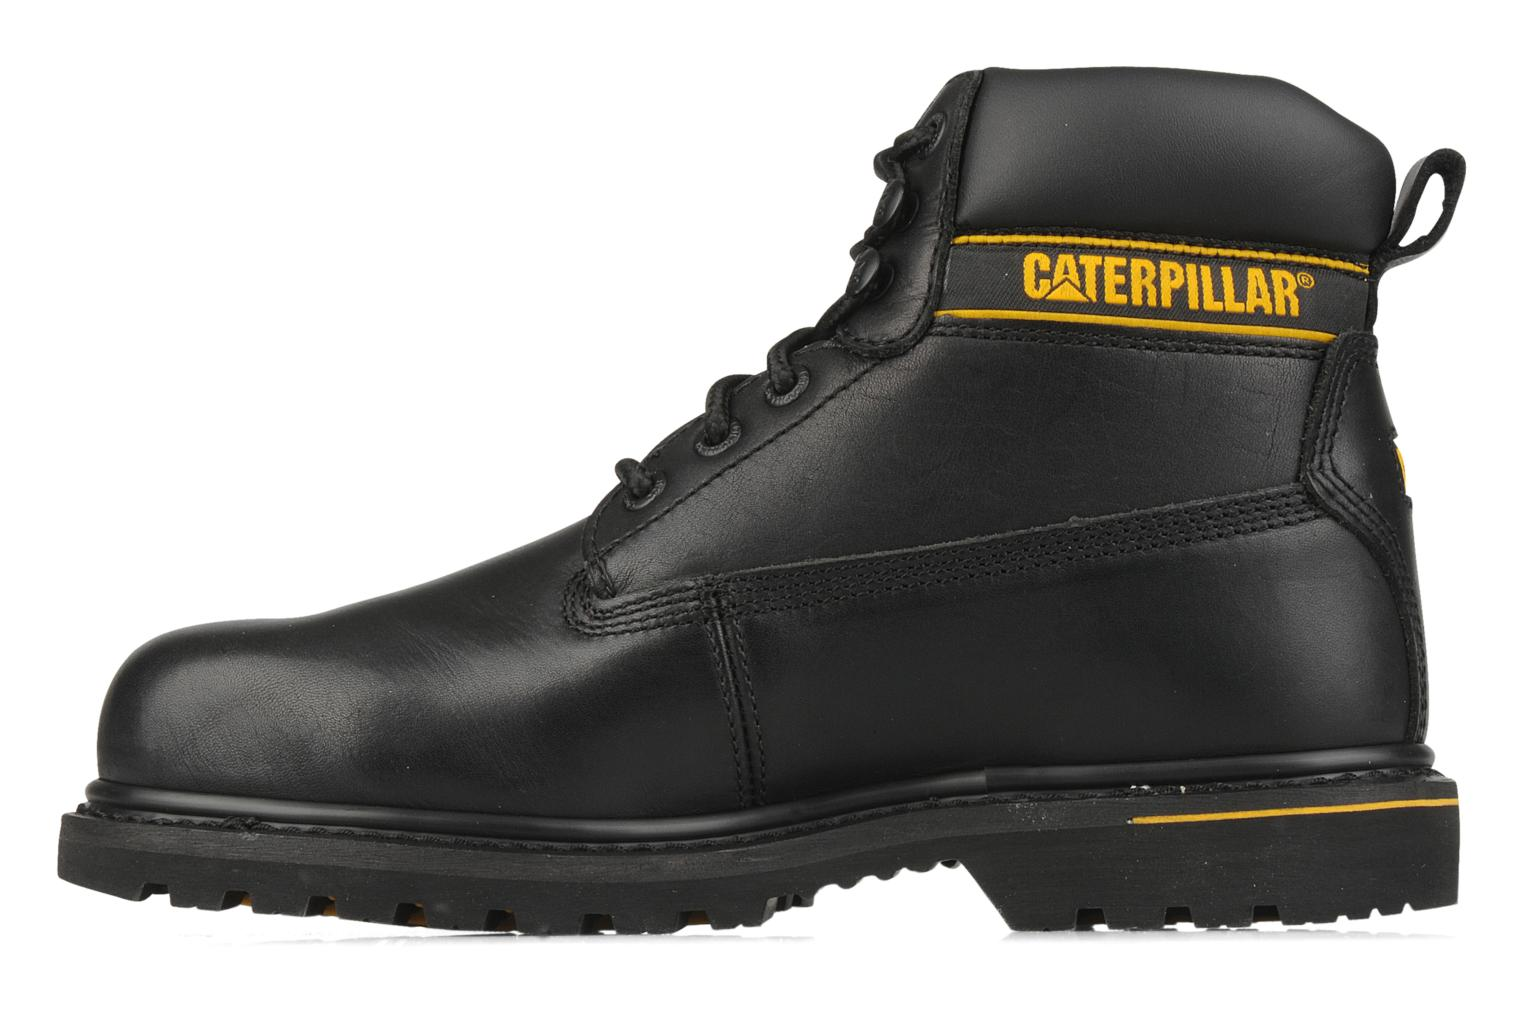 Bottines et boots Caterpillar Holton SB Noir vue face